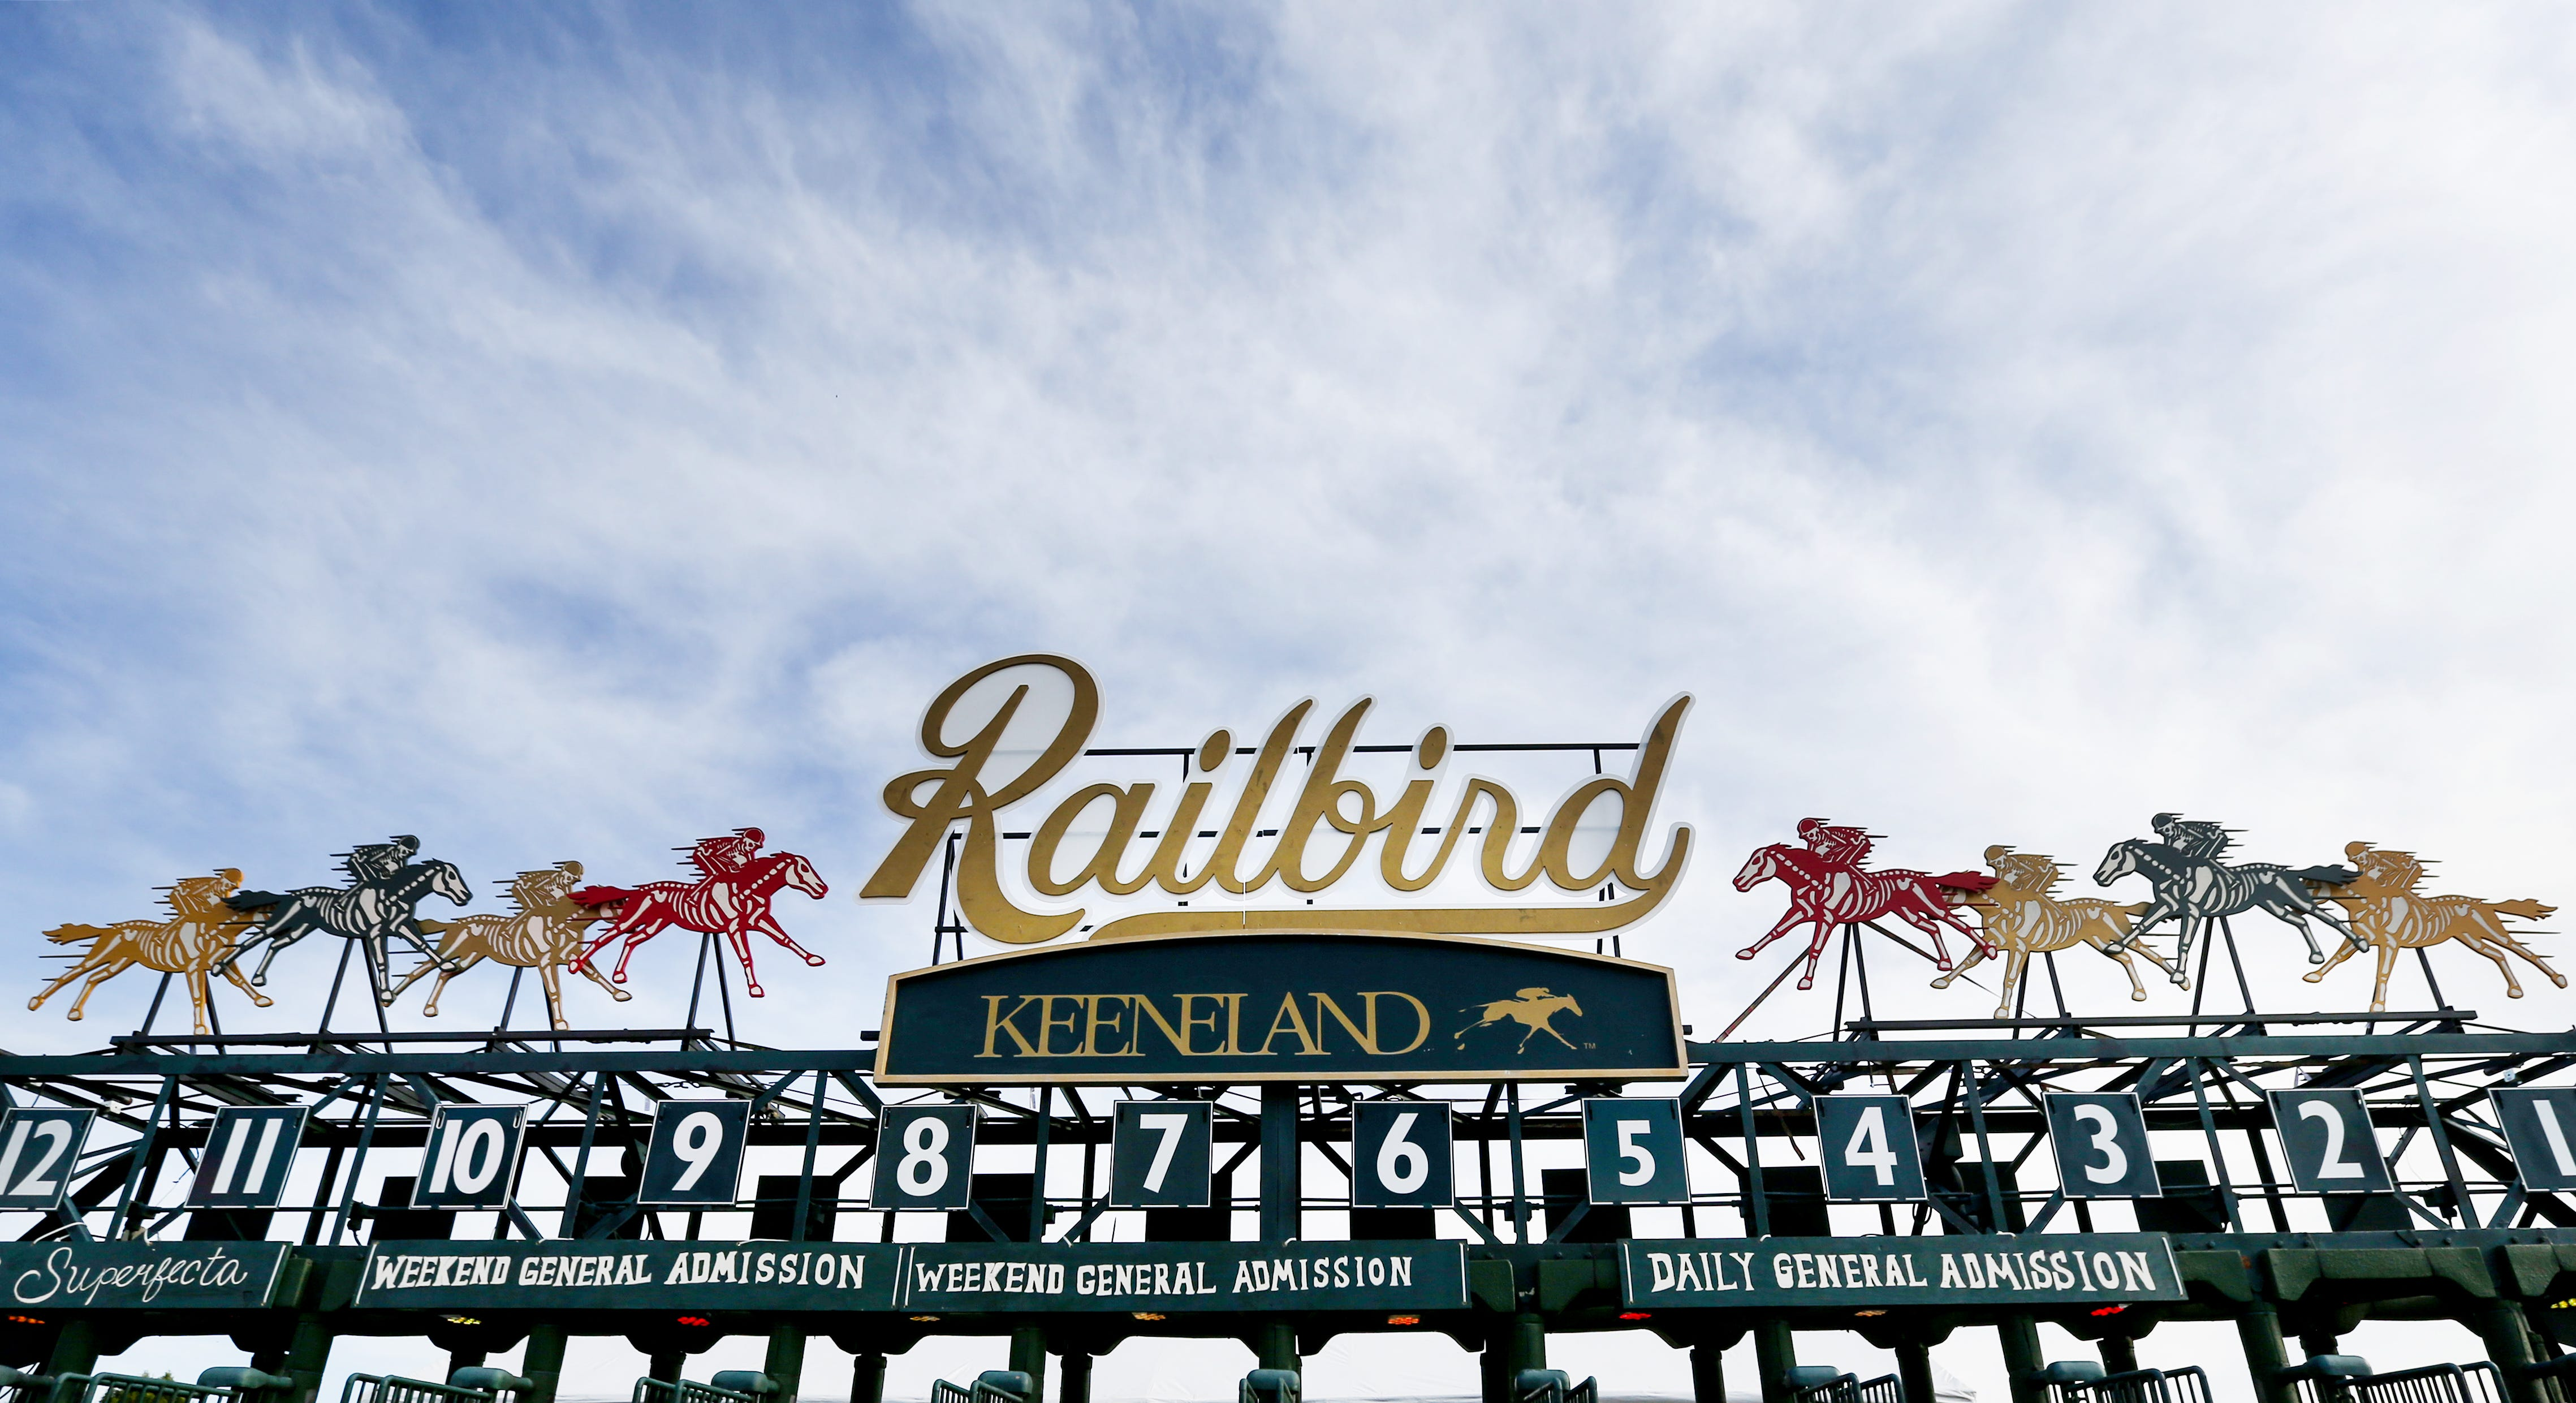 Lexington s Railbird Festival is canceled in 2020 but plans to return to Keeneland in 2021